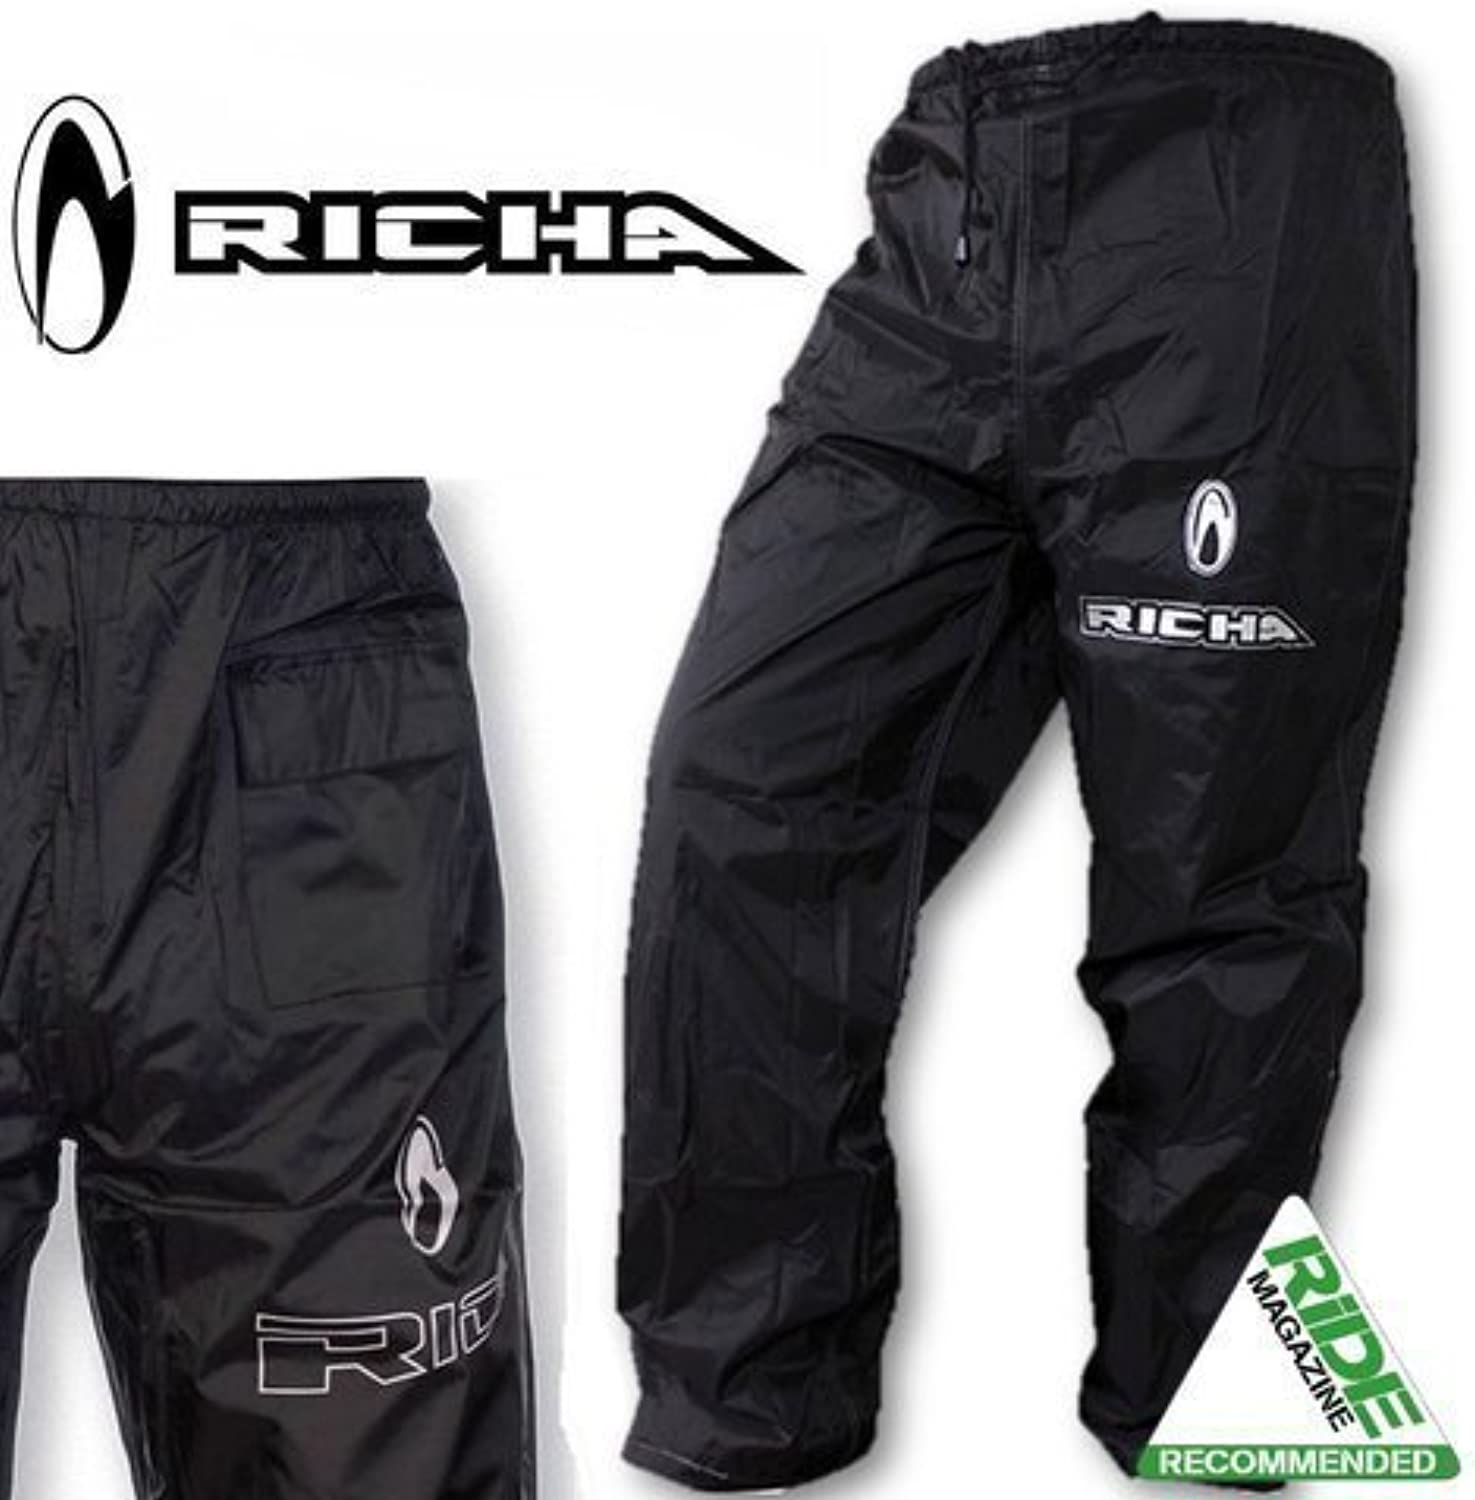 7RW100 8XL - Richa Rain Warrior Textile Trousers 8XL Black